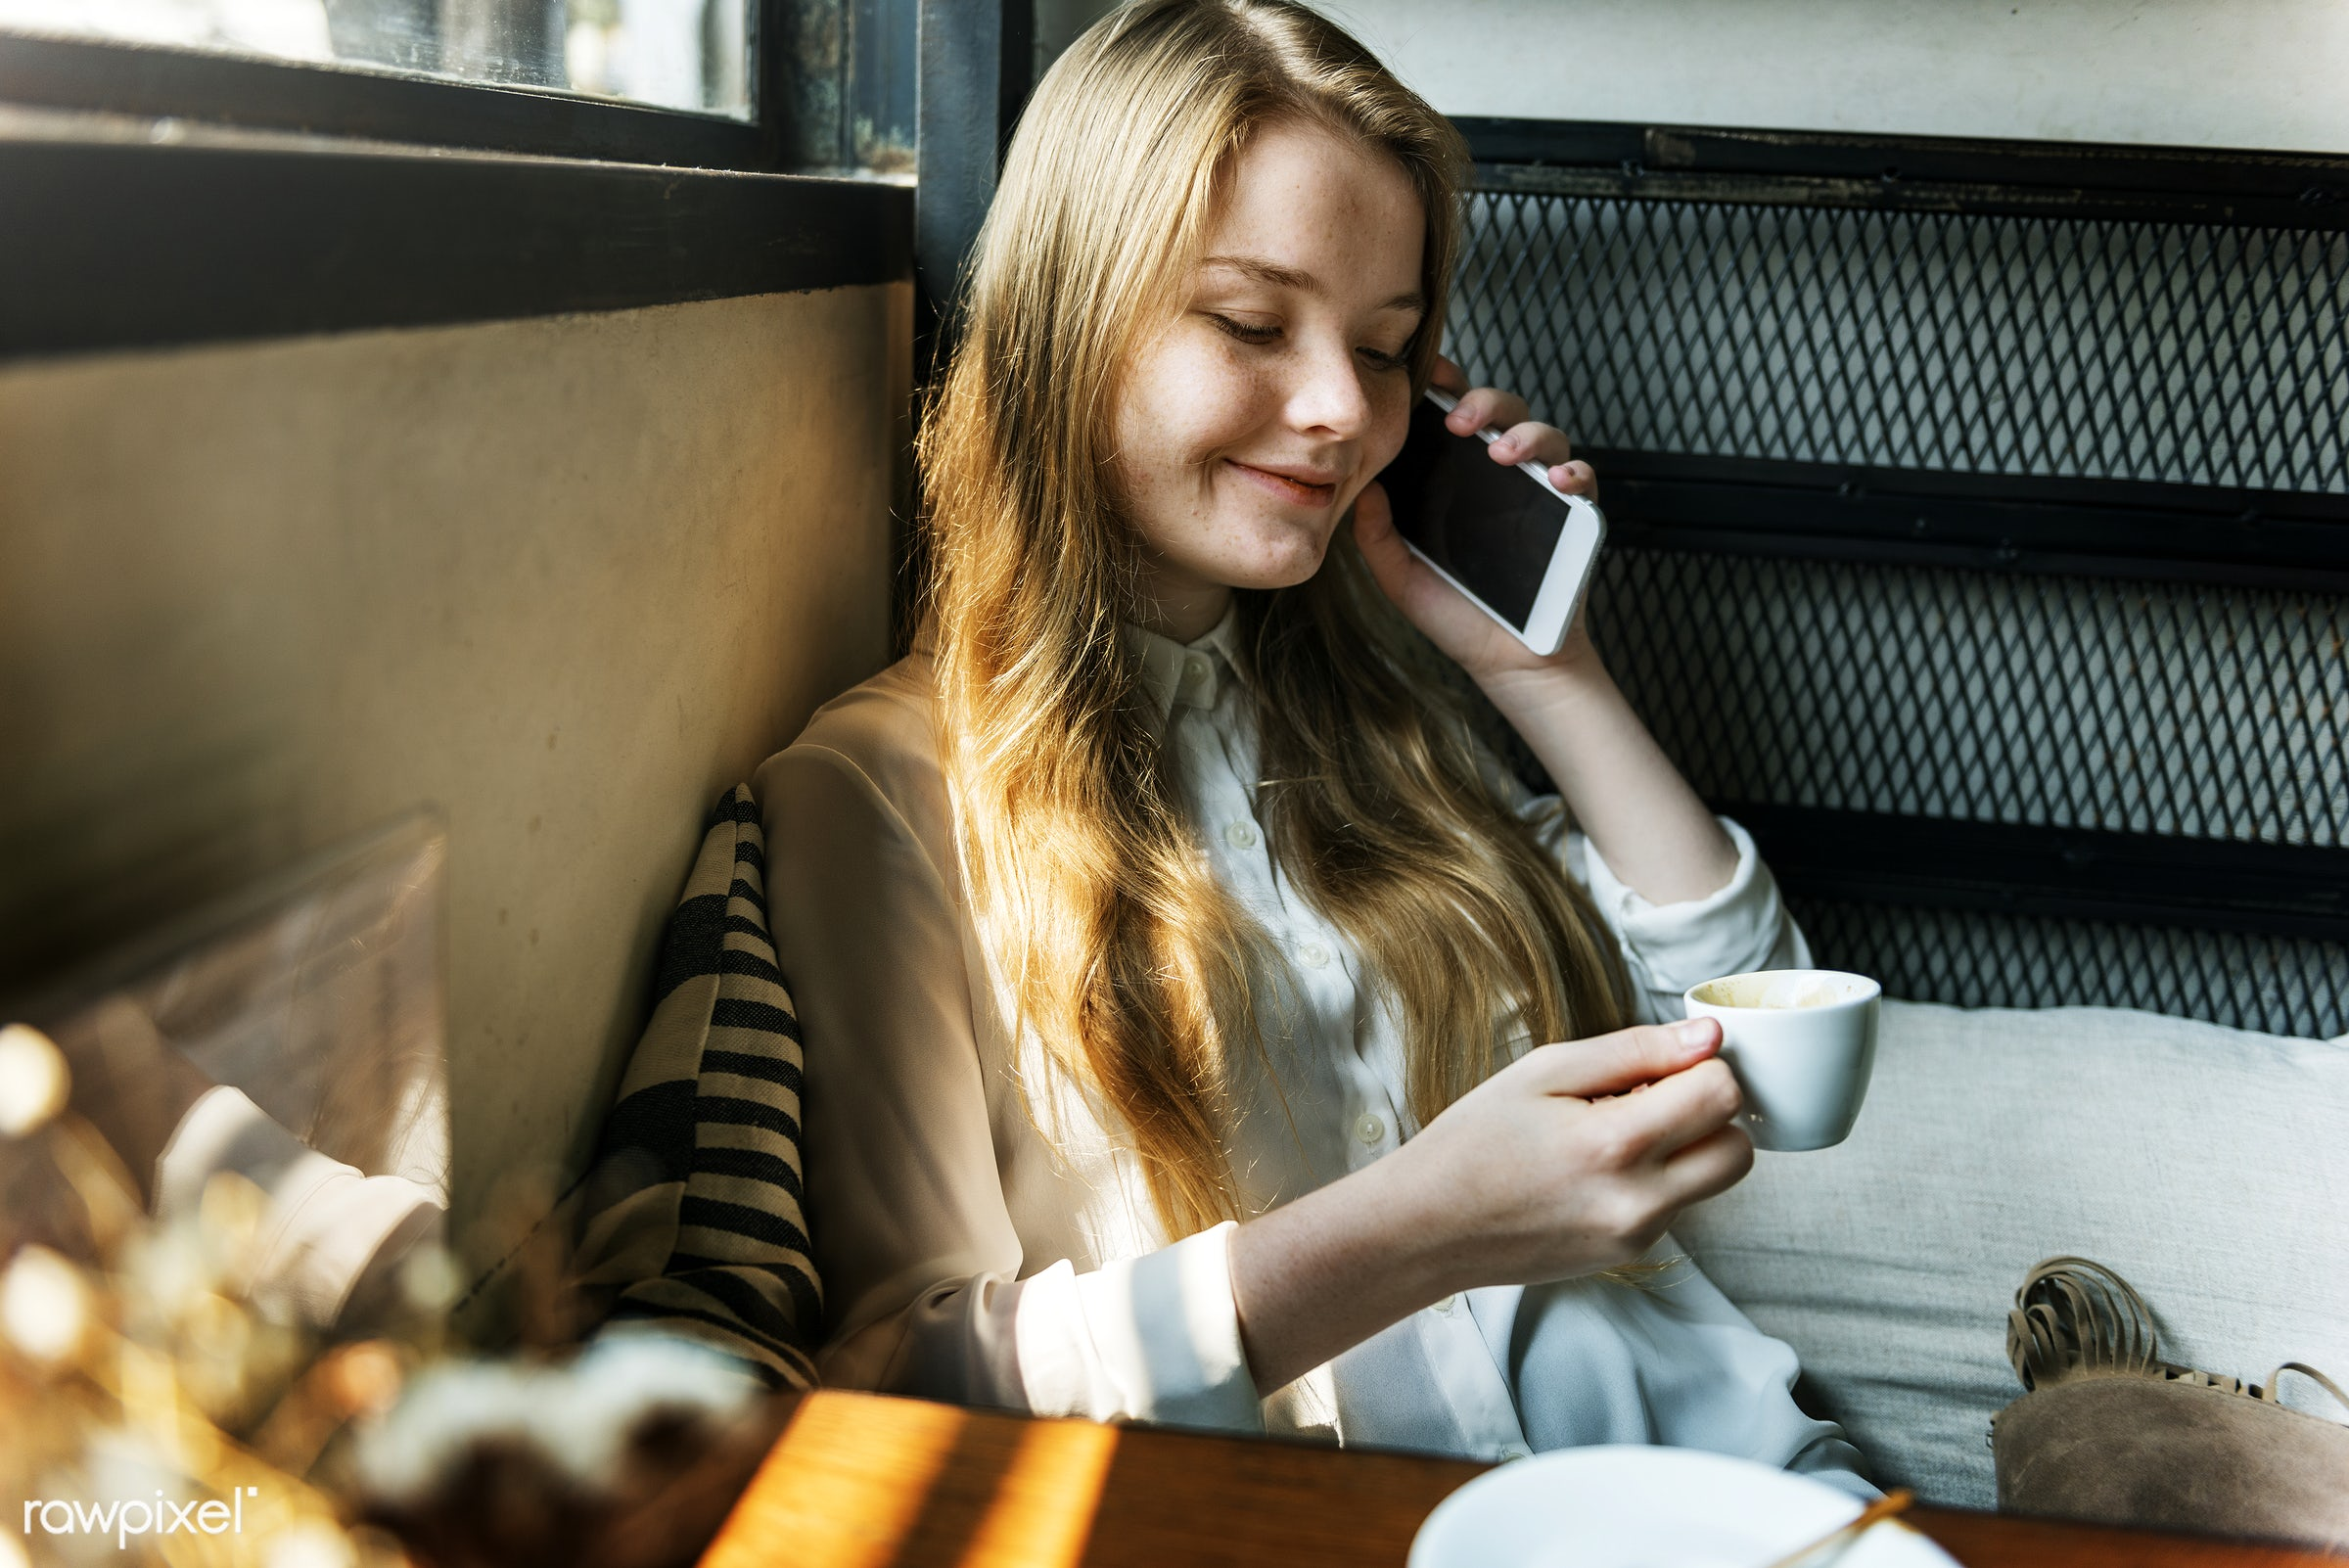 Young caucasian woman at a coffee shop - alone, aroma, beverage, break, cafe, caffeine, cellphone, cheerful, coffee, coffee...